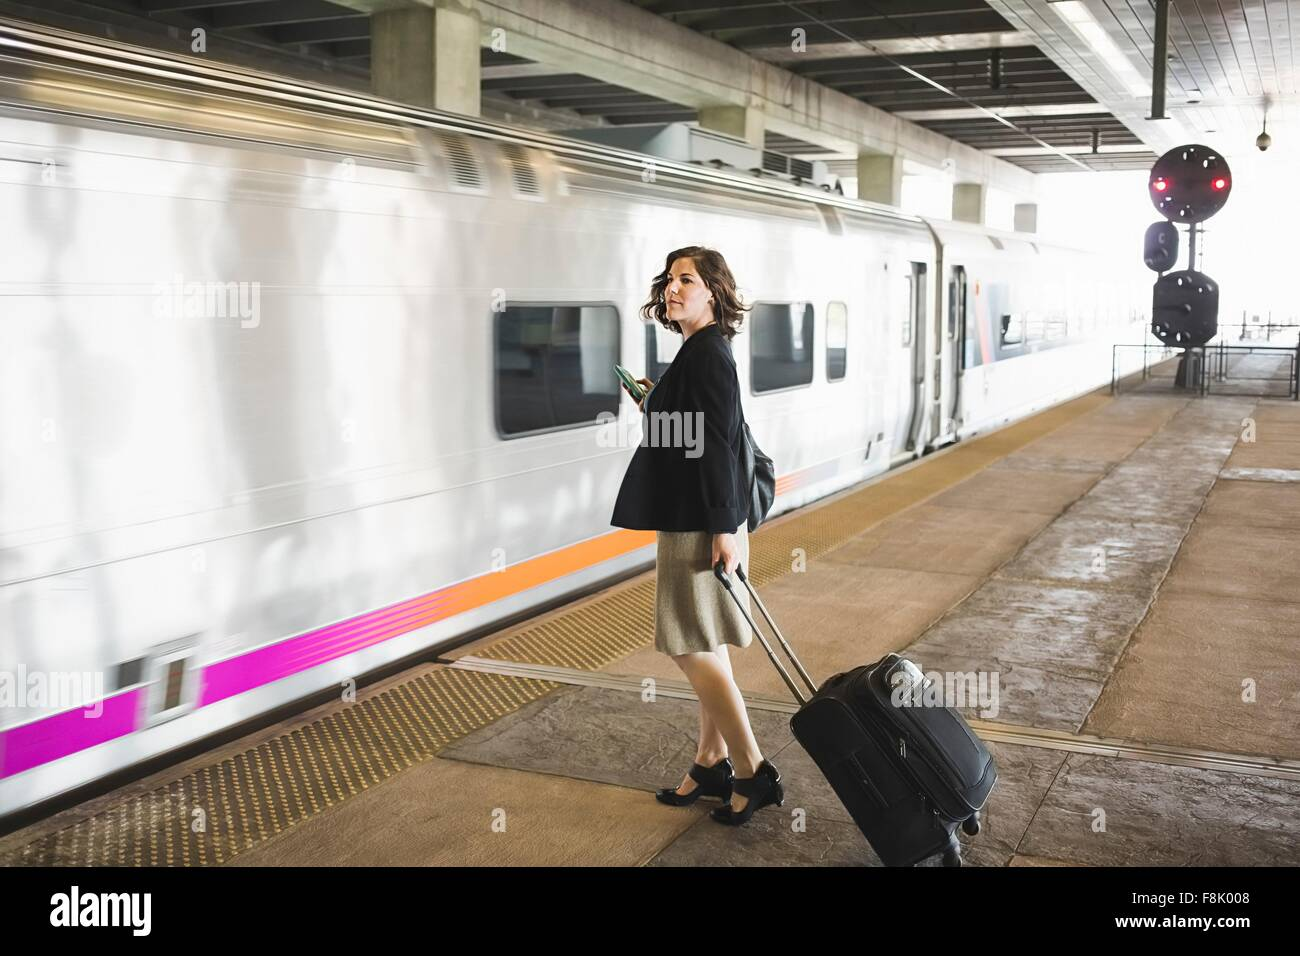 Mid adult woman en attendant l'embarquement, train à roues holding suitcase et smartphone Photo Stock